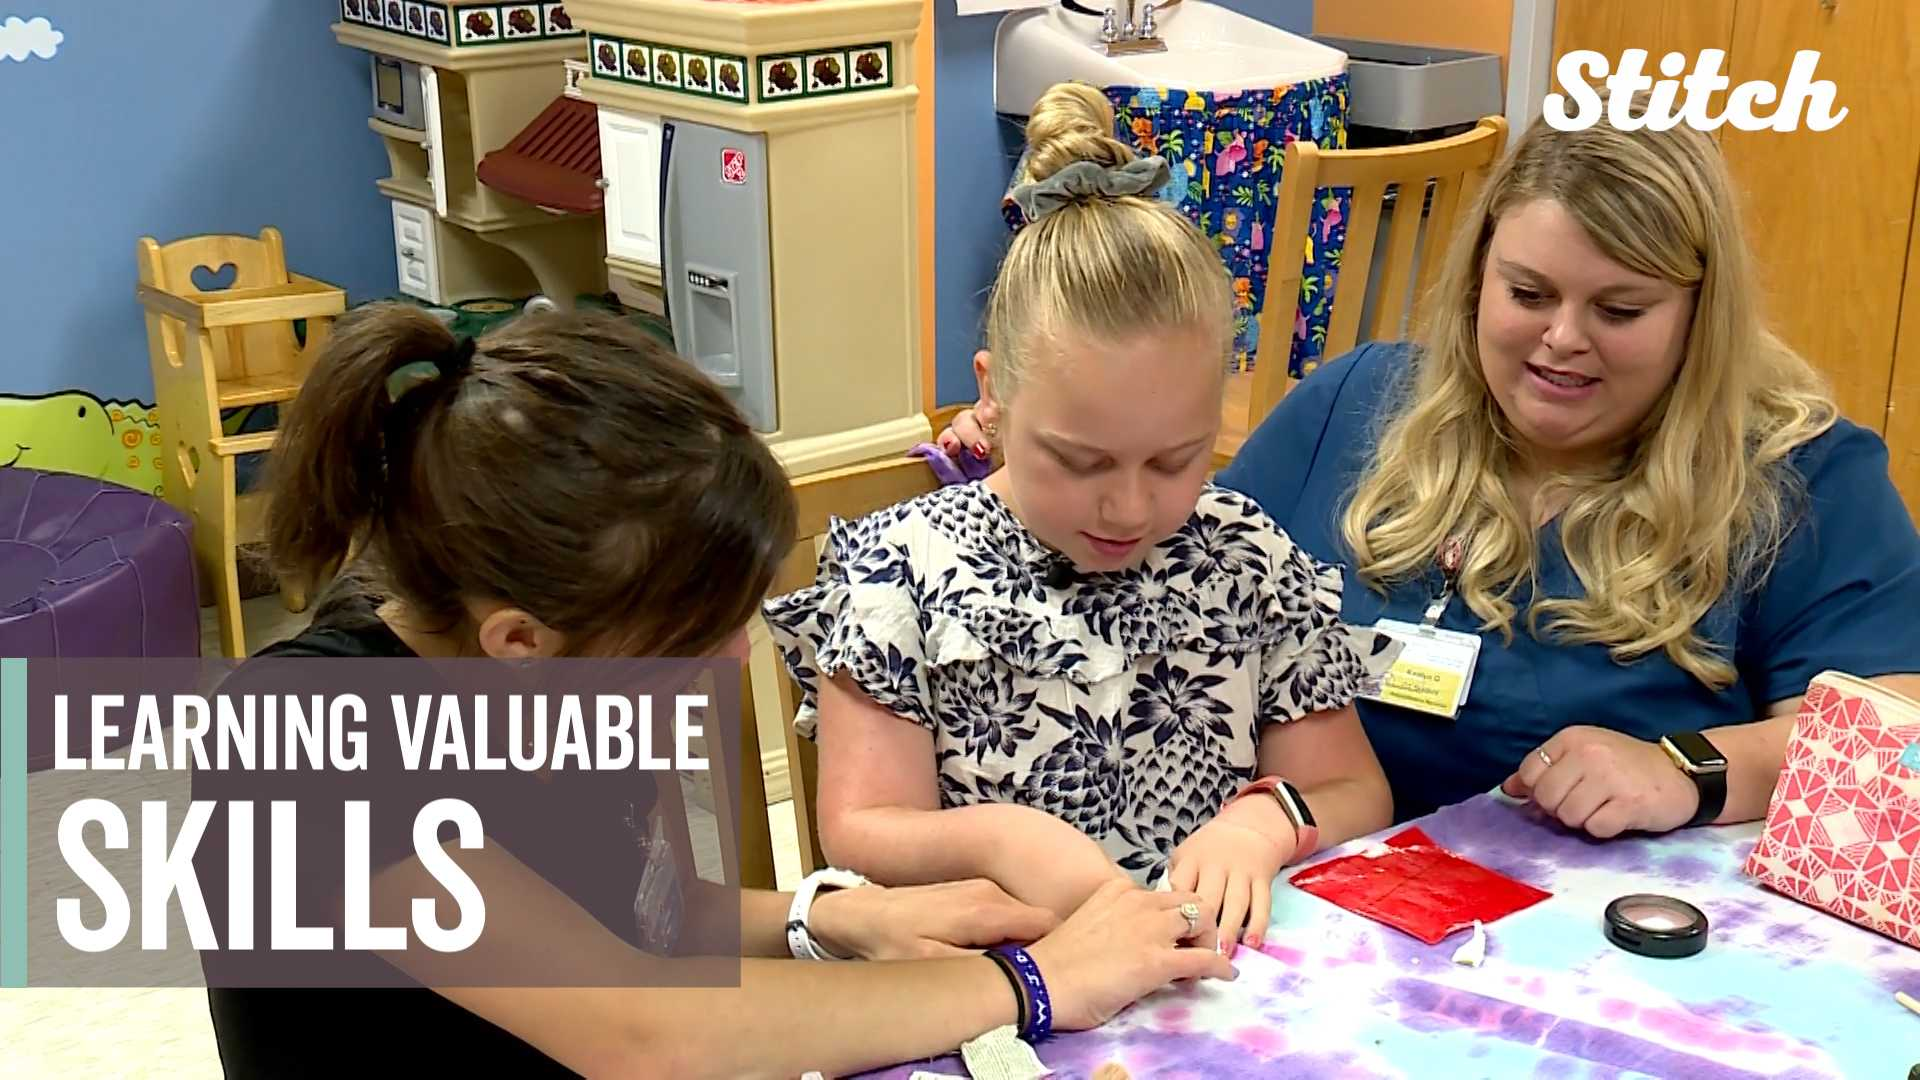 Girls learn how to put on makeup, paint nails at camp for special needs children